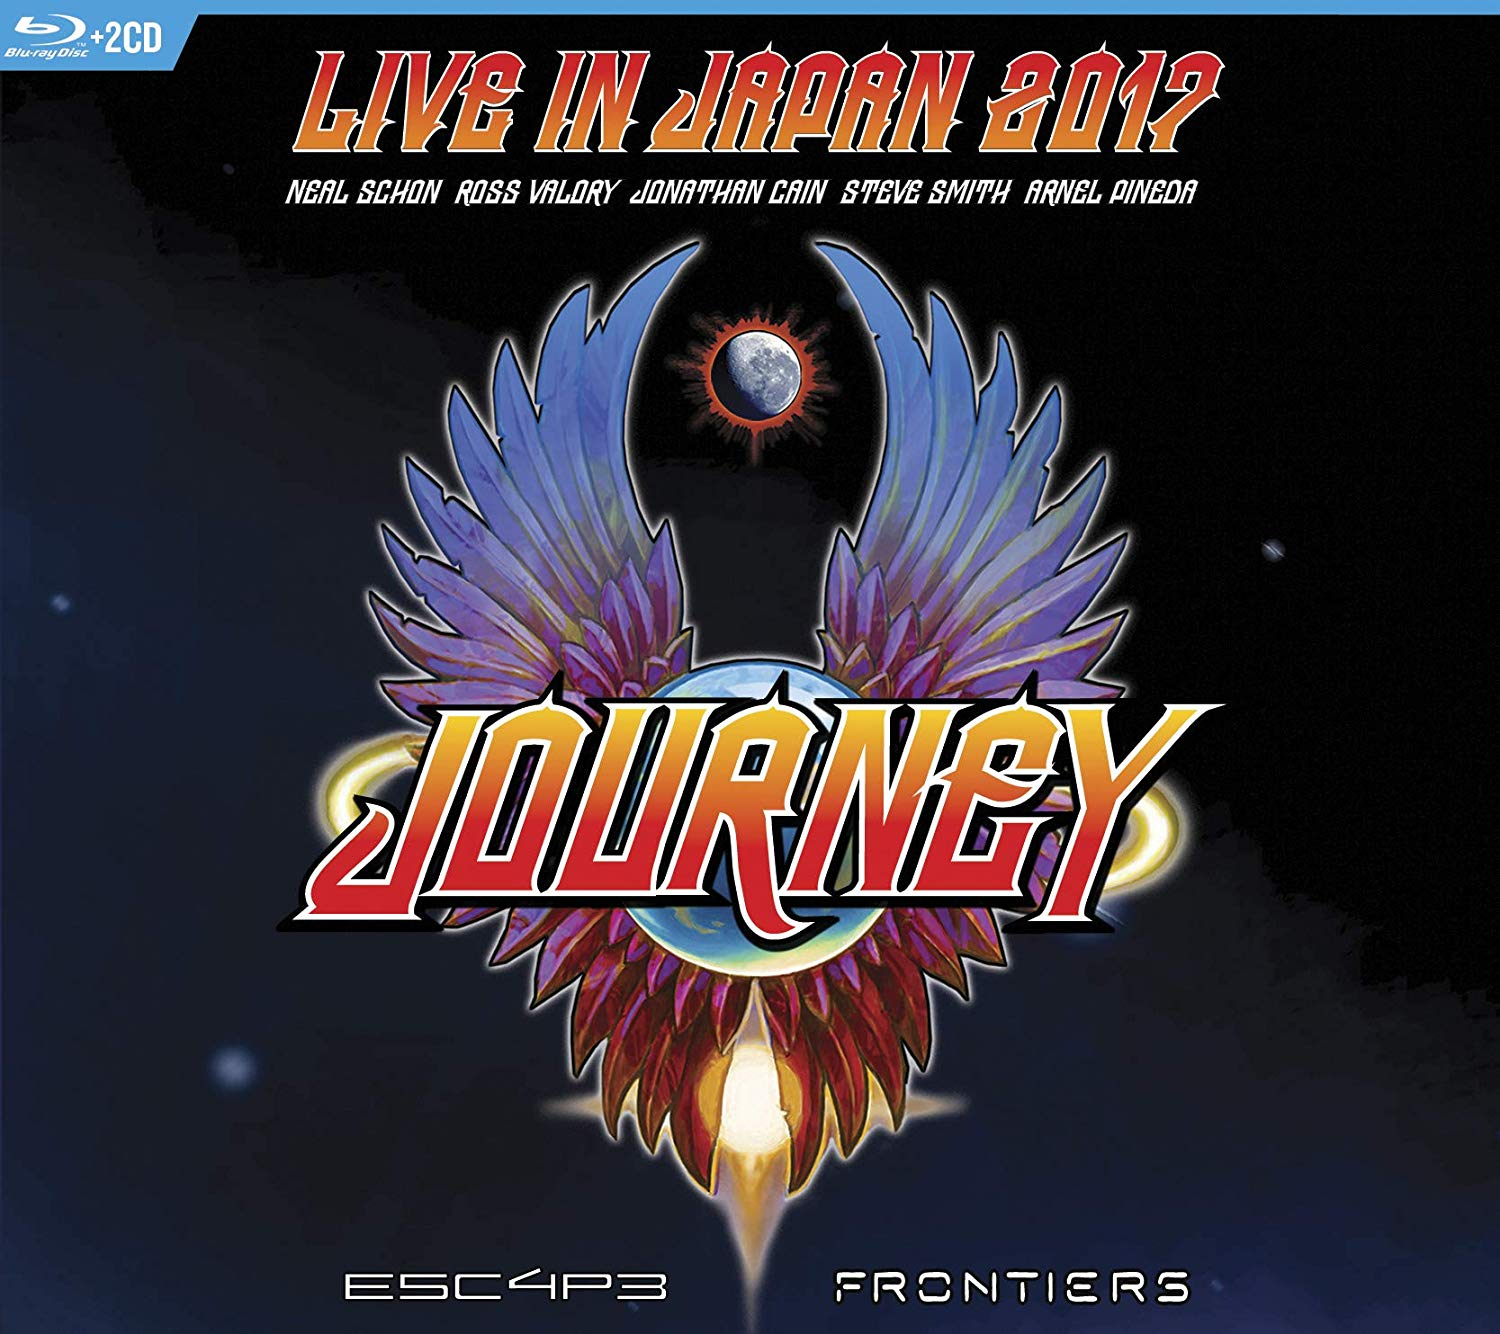 CD Shop - JOURNEY ESCAPE & FRONTIERS.../CD